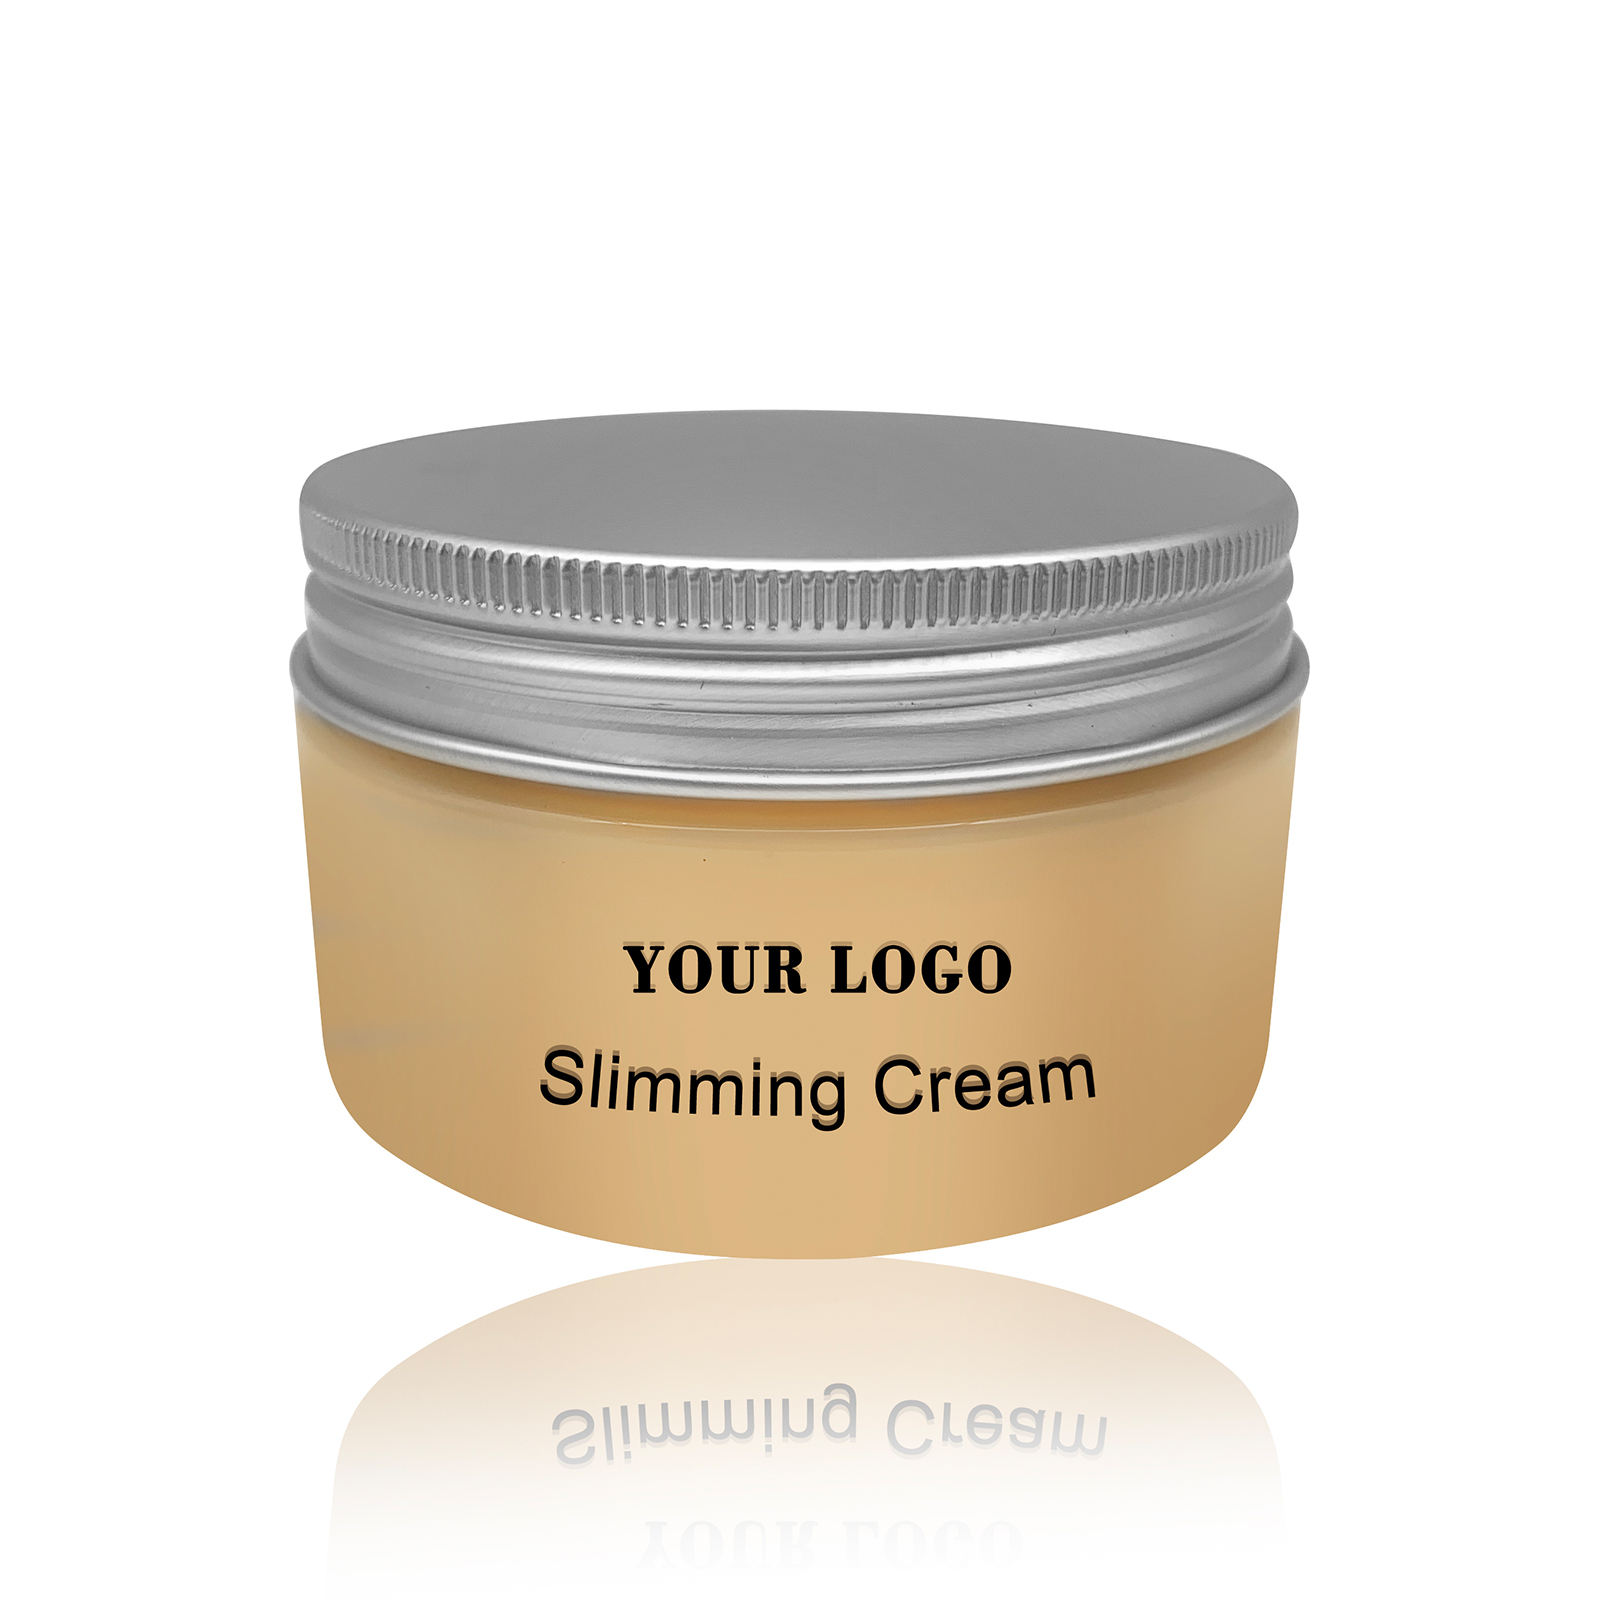 Create your own slimming cream with factory price private label Fat burning cream 100g bottle packing